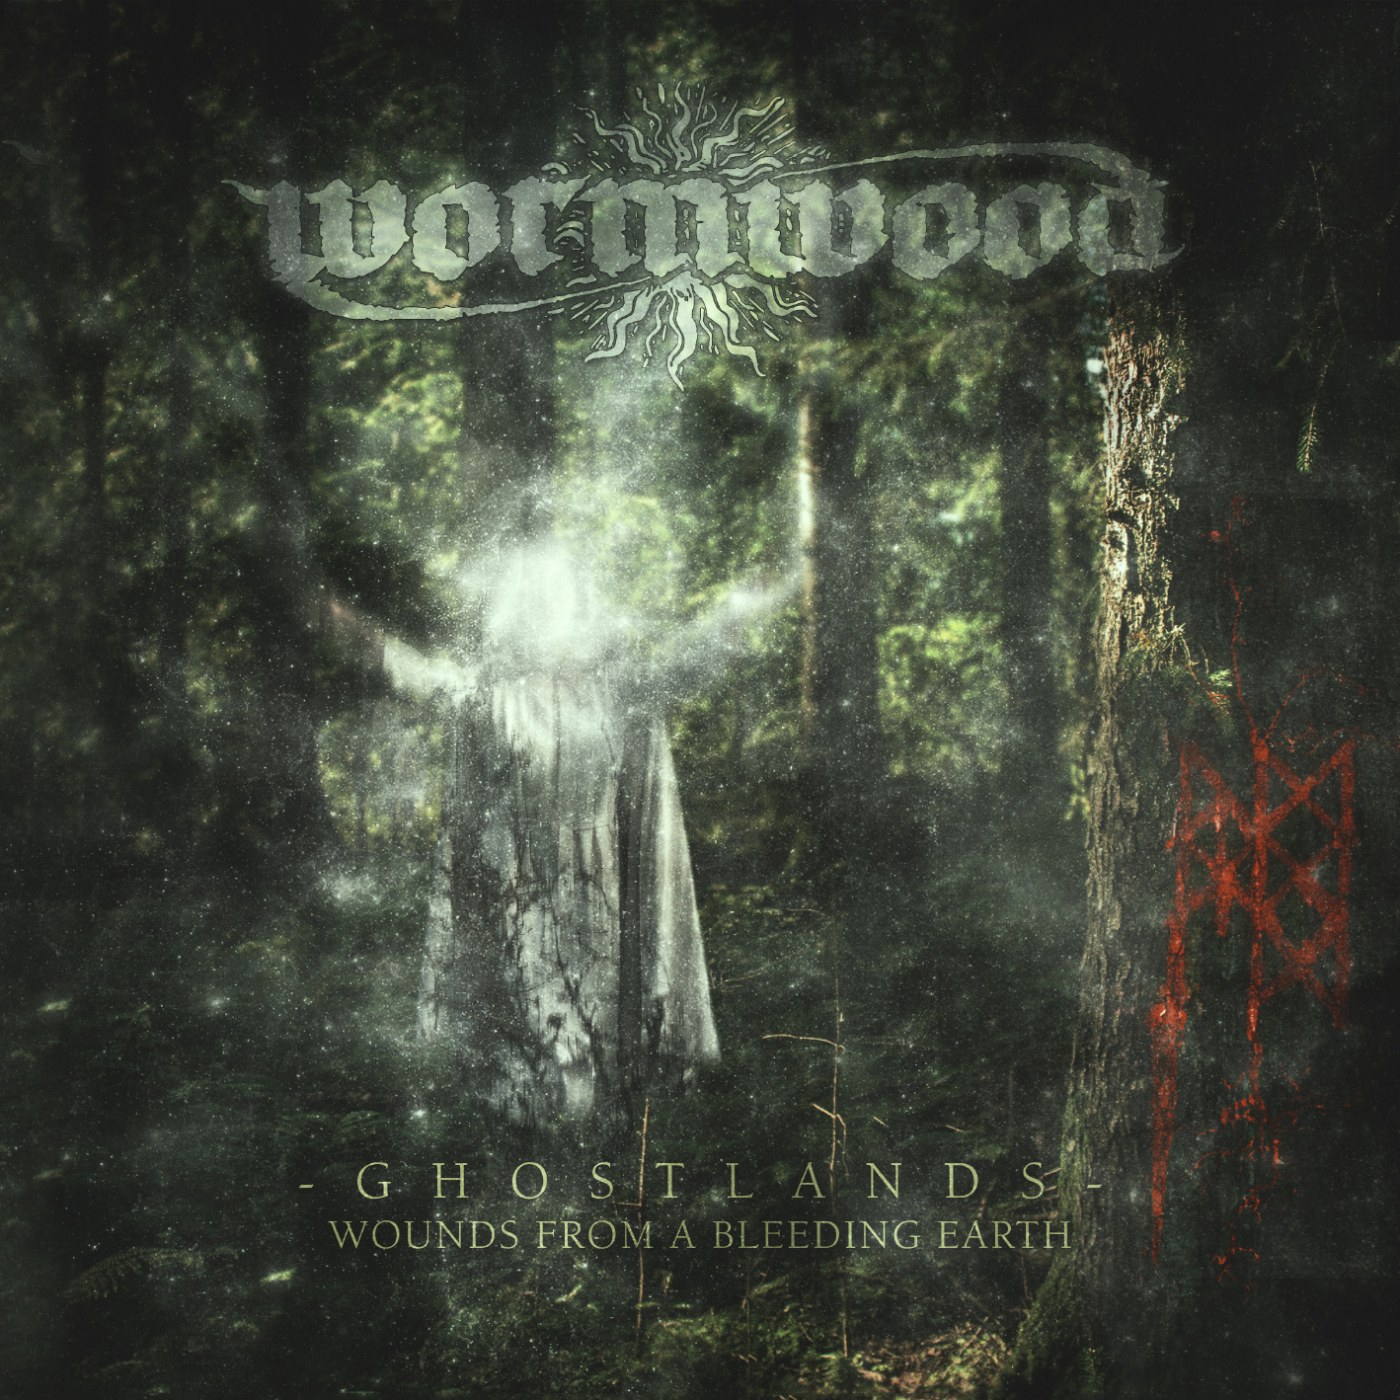 Wormwood (SWE) - Ghostlands (Wounds from a Bleeding Earth)